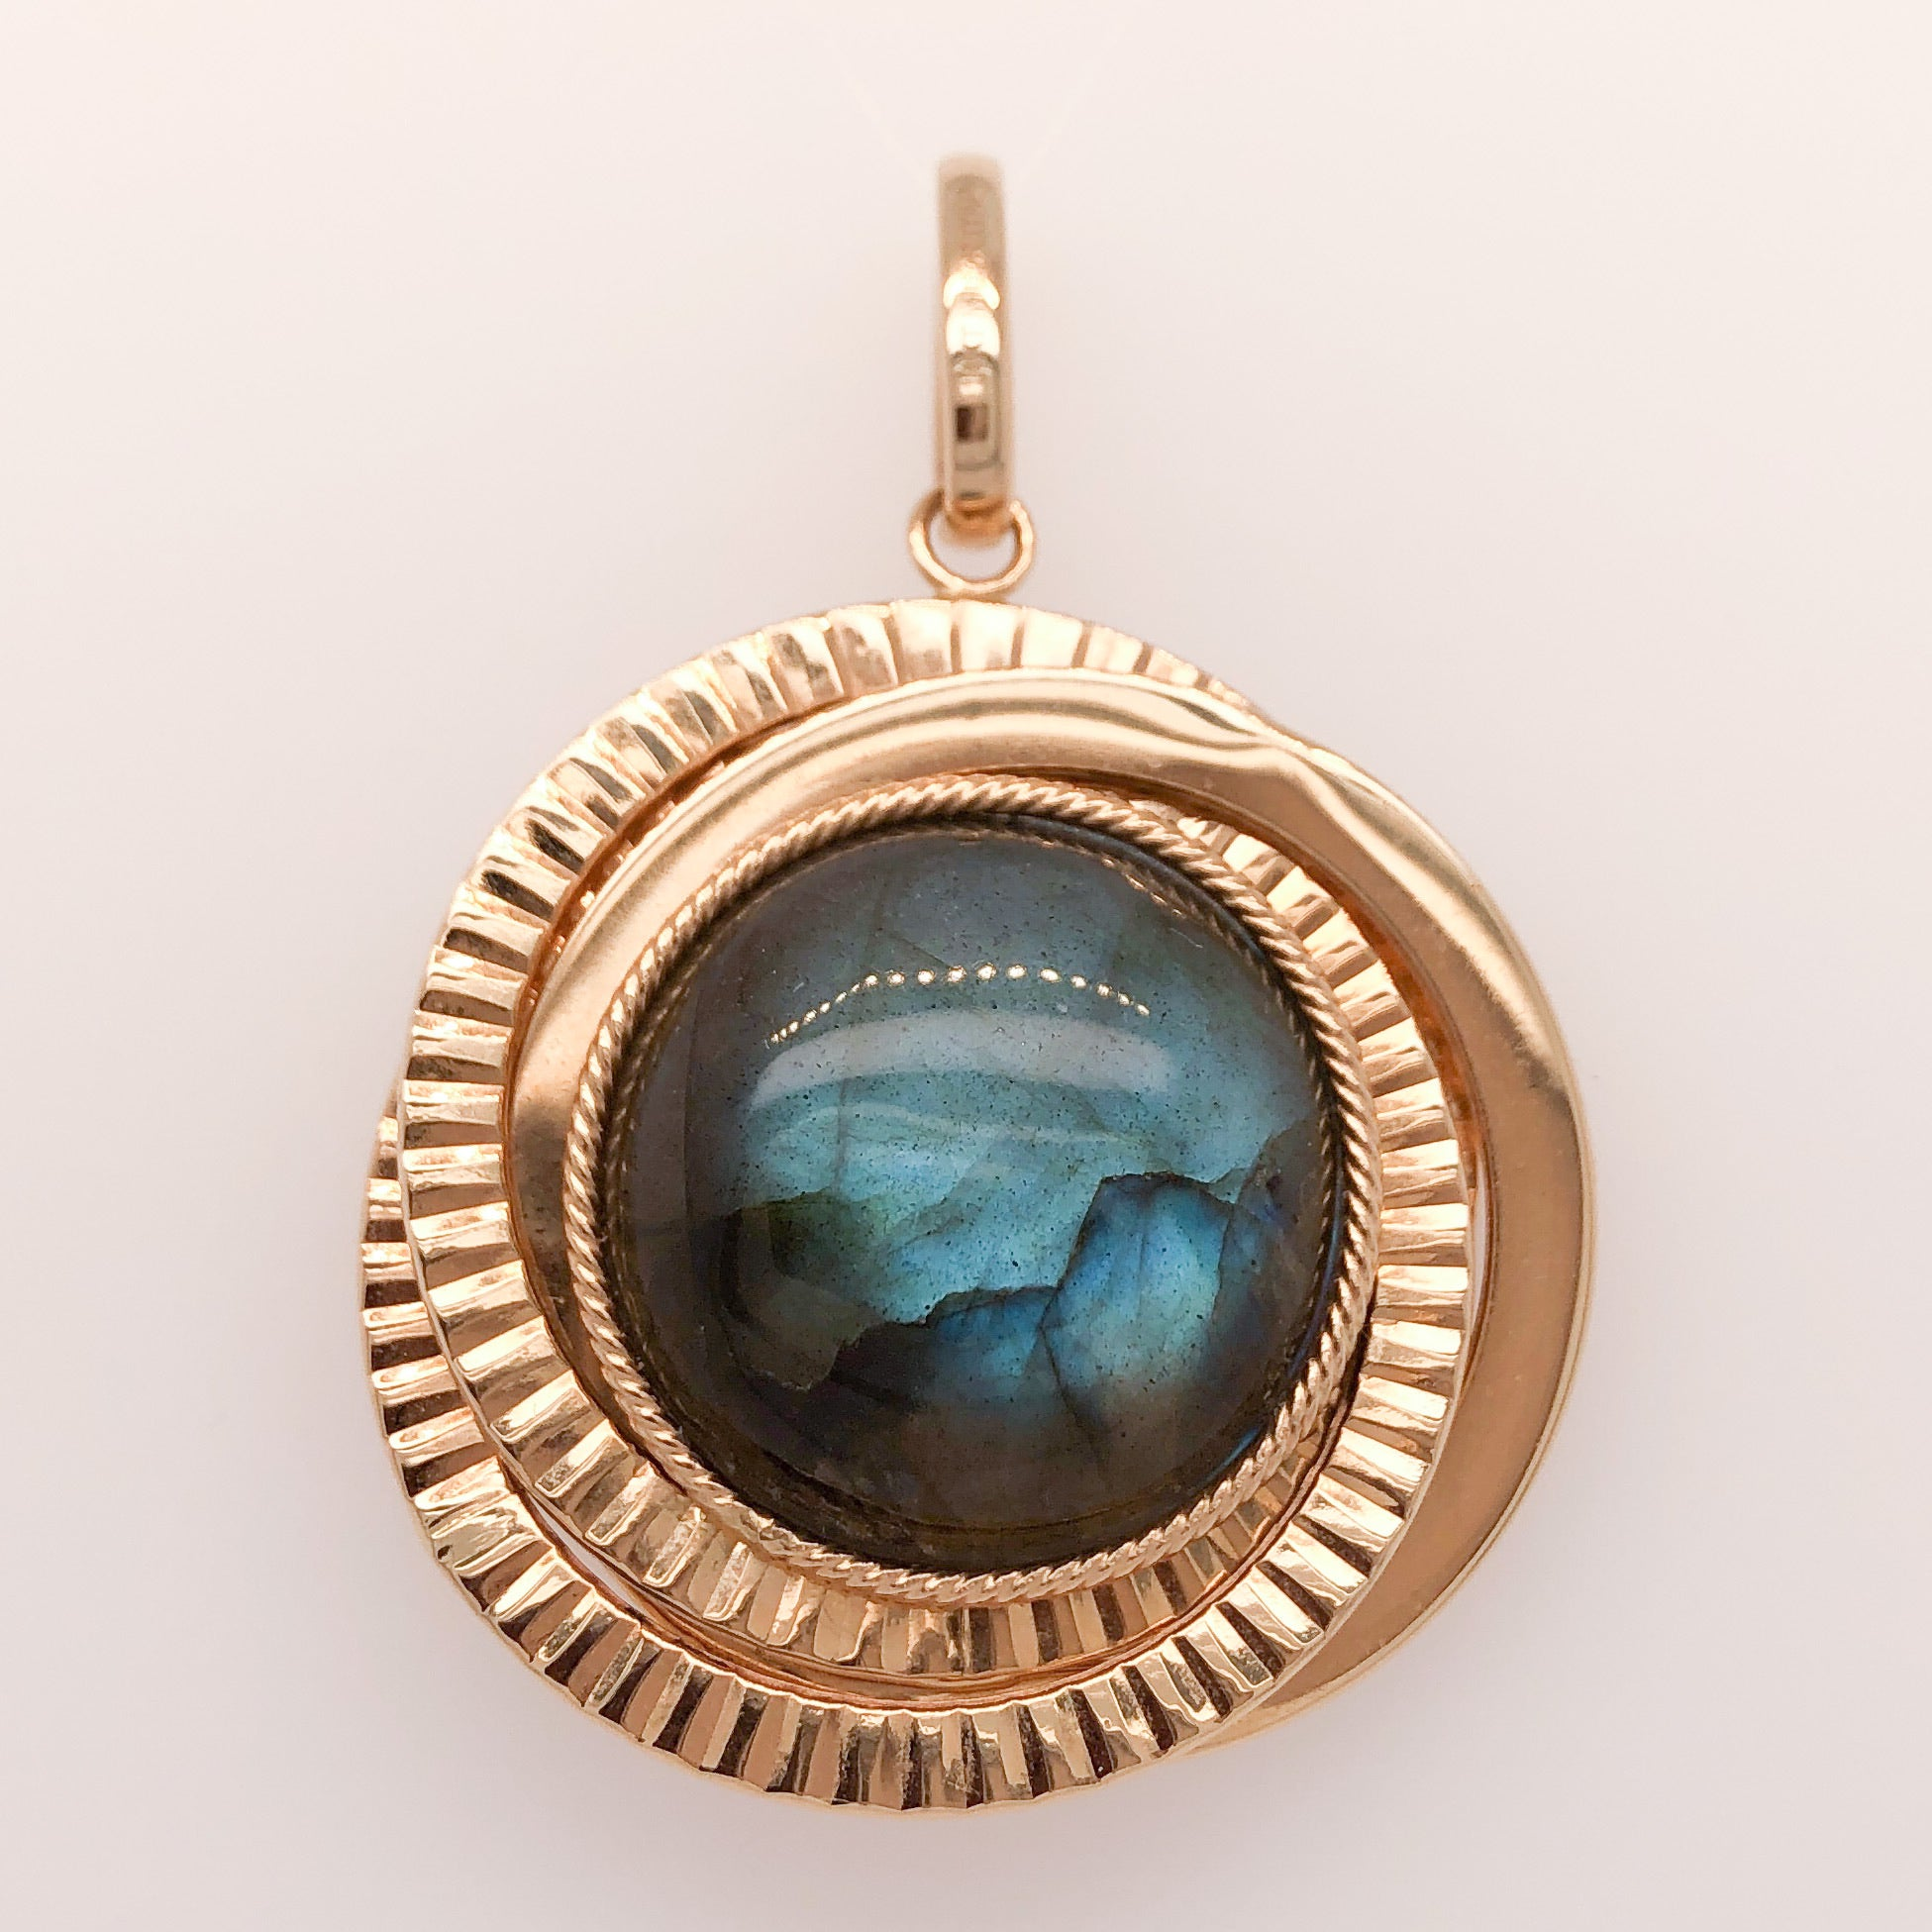 14K Yellow Gold Large Round Reversible Labradorite/Druzy Pendant  CPEND0033